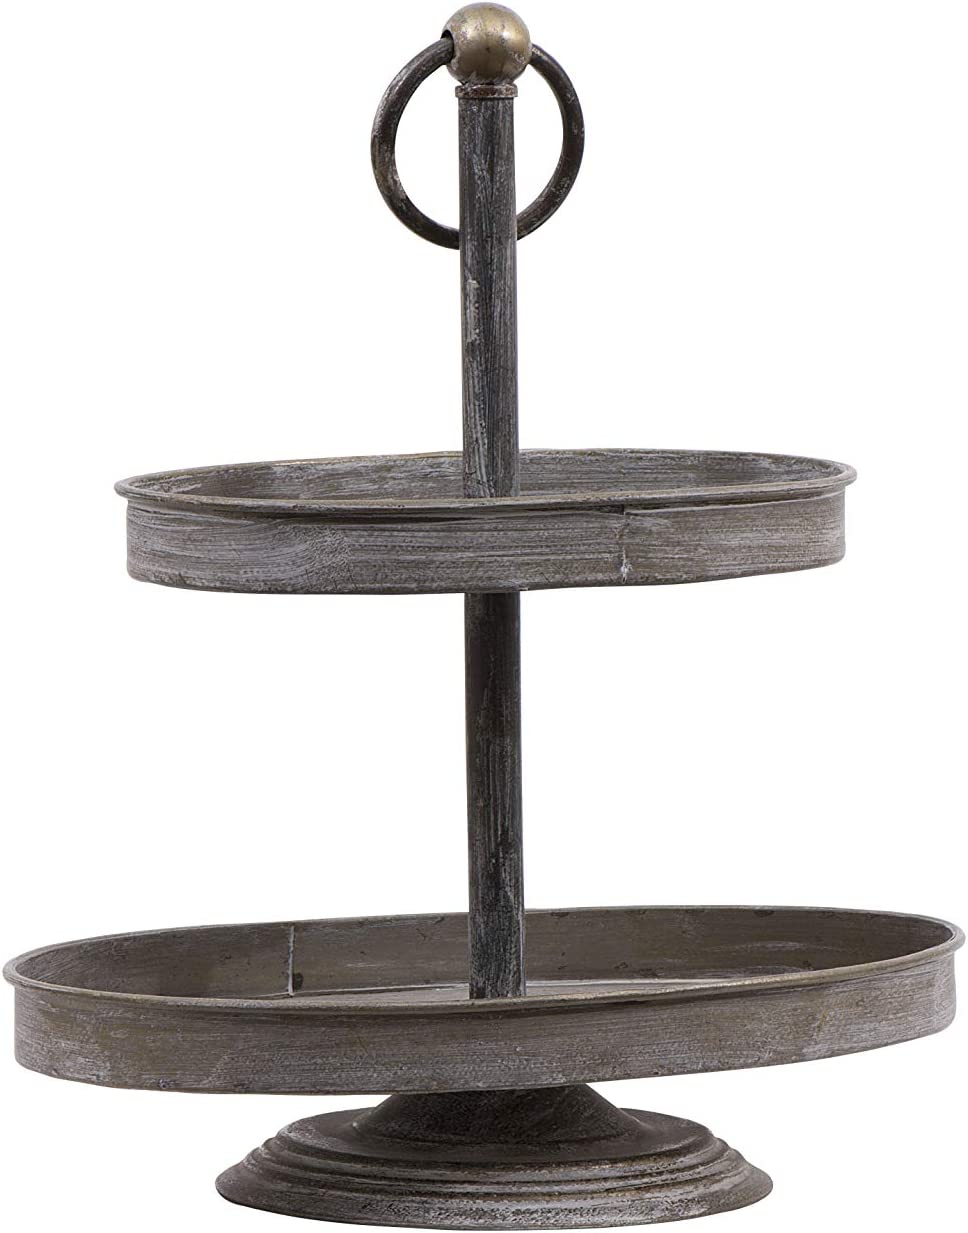 Creative Co-op Decorative Metal Oval Two Tier Tray with Rustic Copper Finish: Home & Kitchen